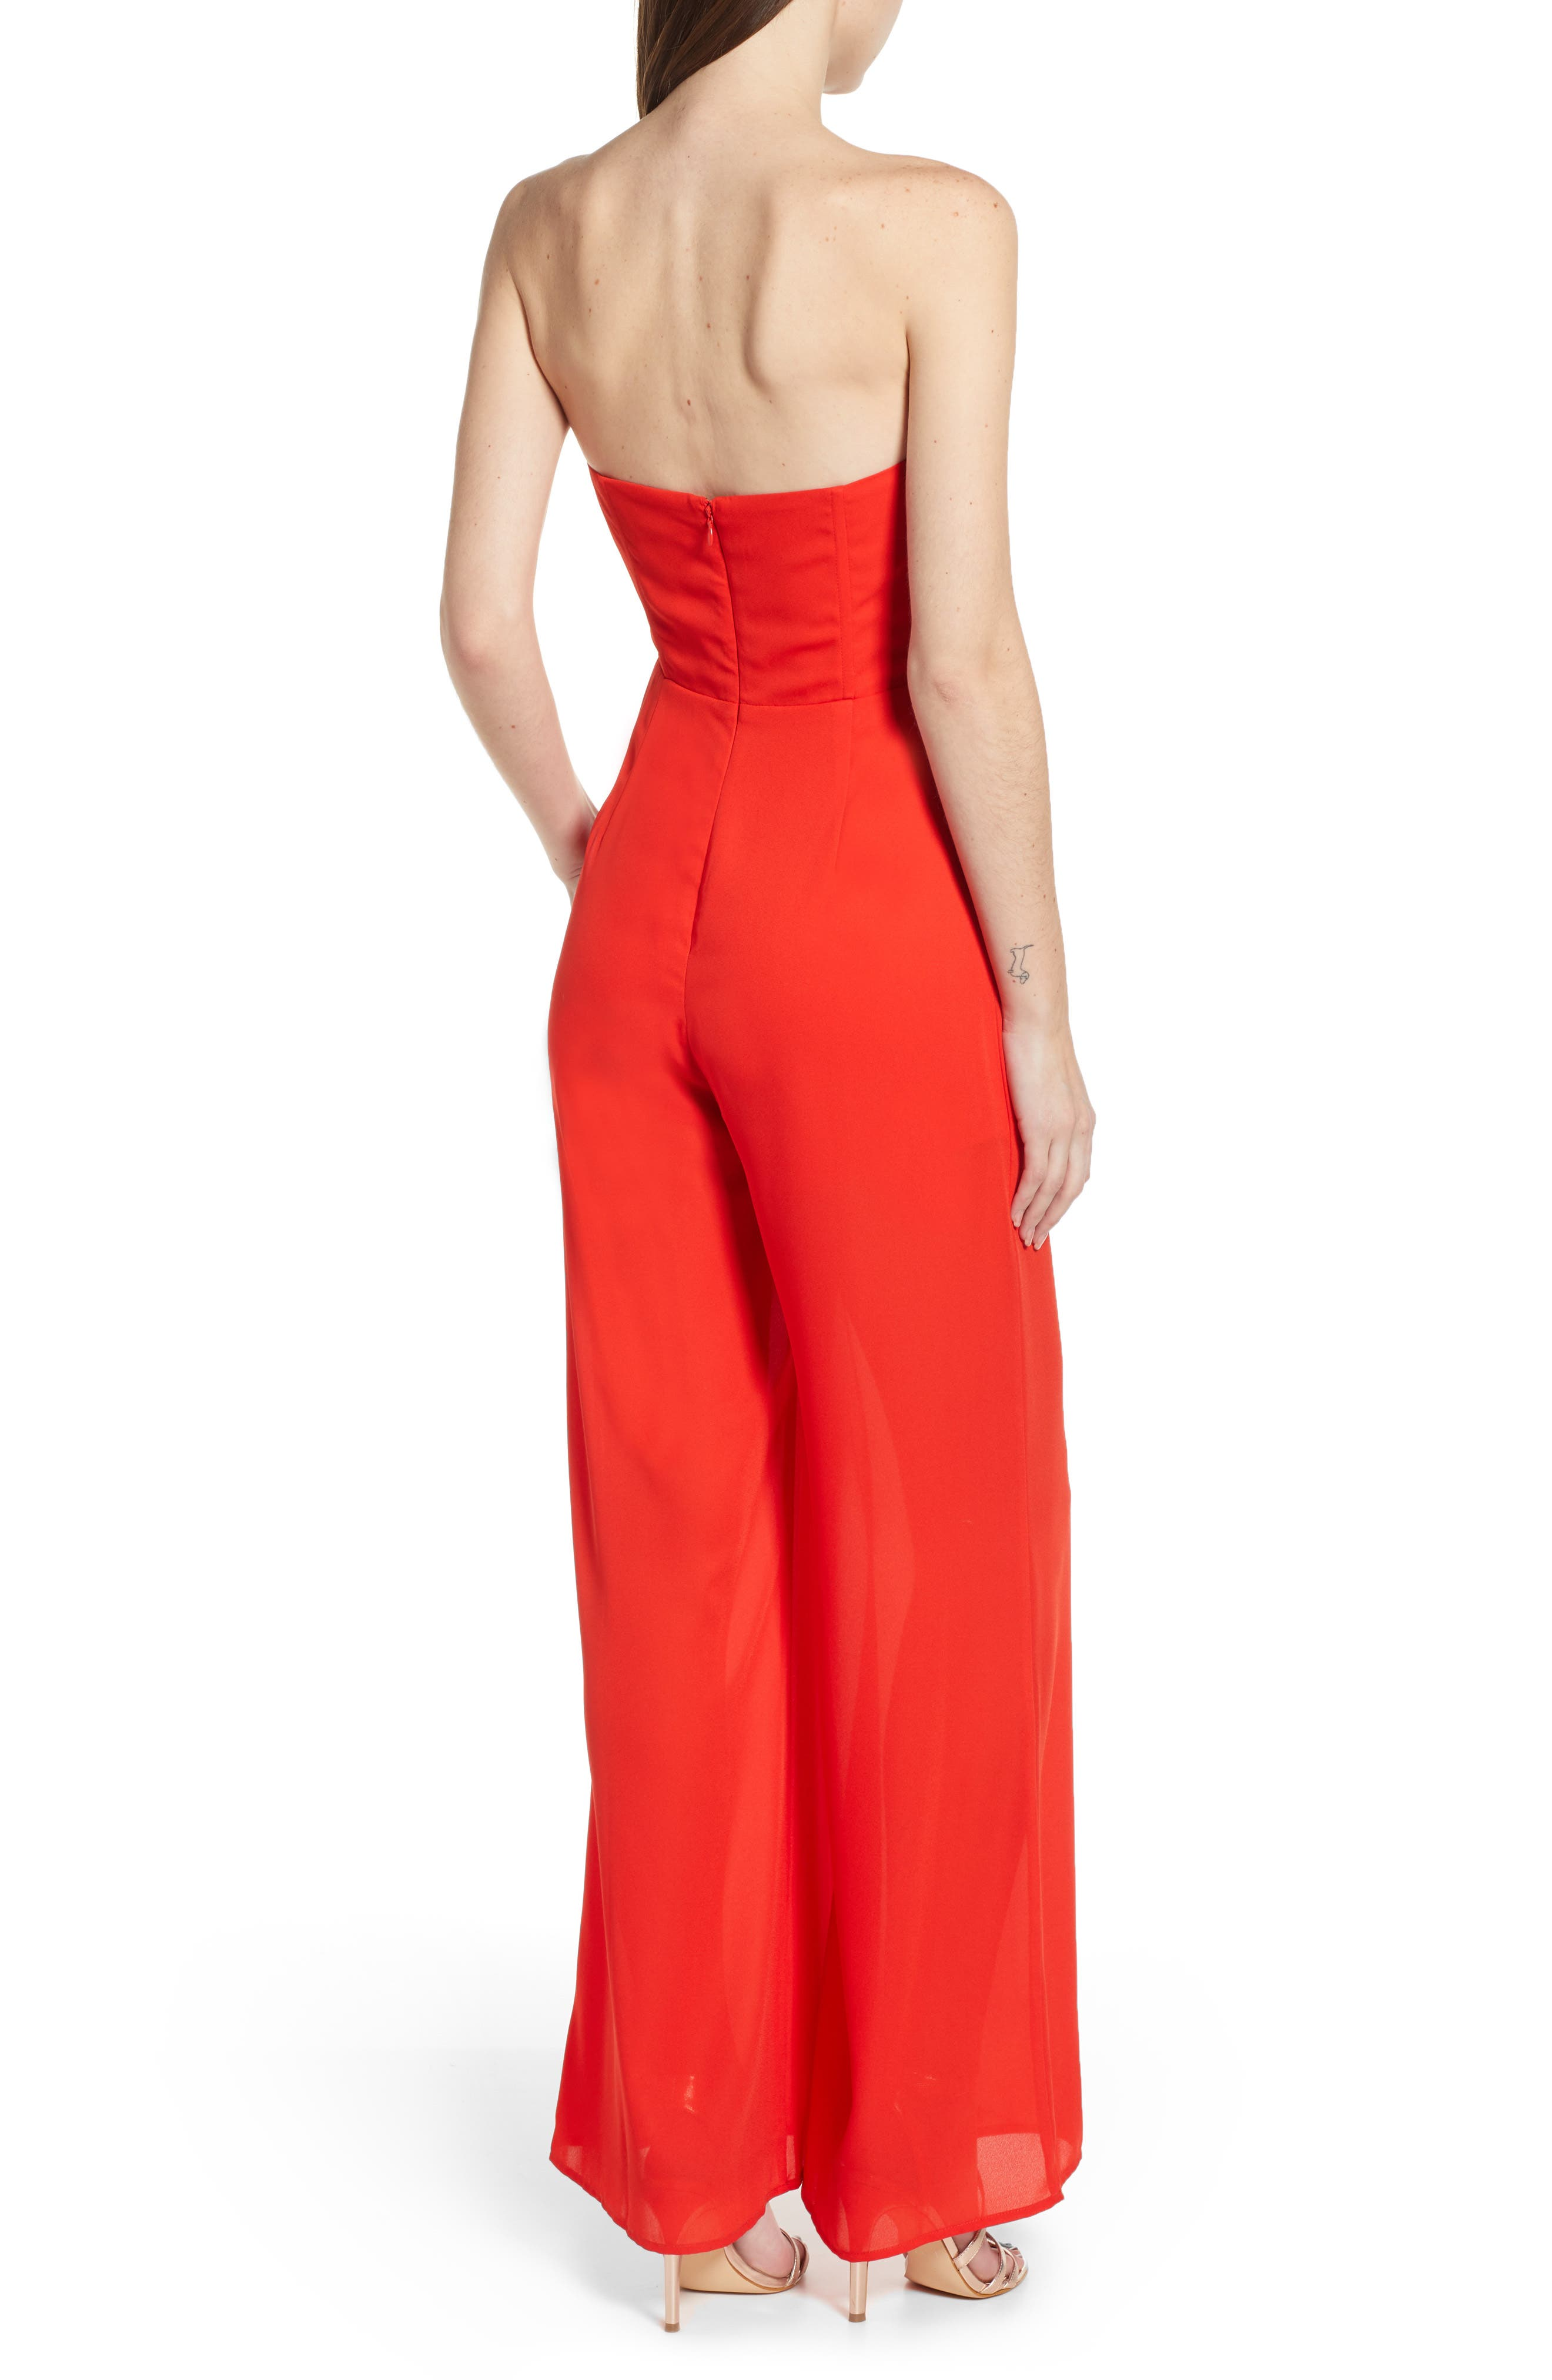 LEITH, Strapless Jumpsuit, Alternate thumbnail 2, color, RED SCARLET